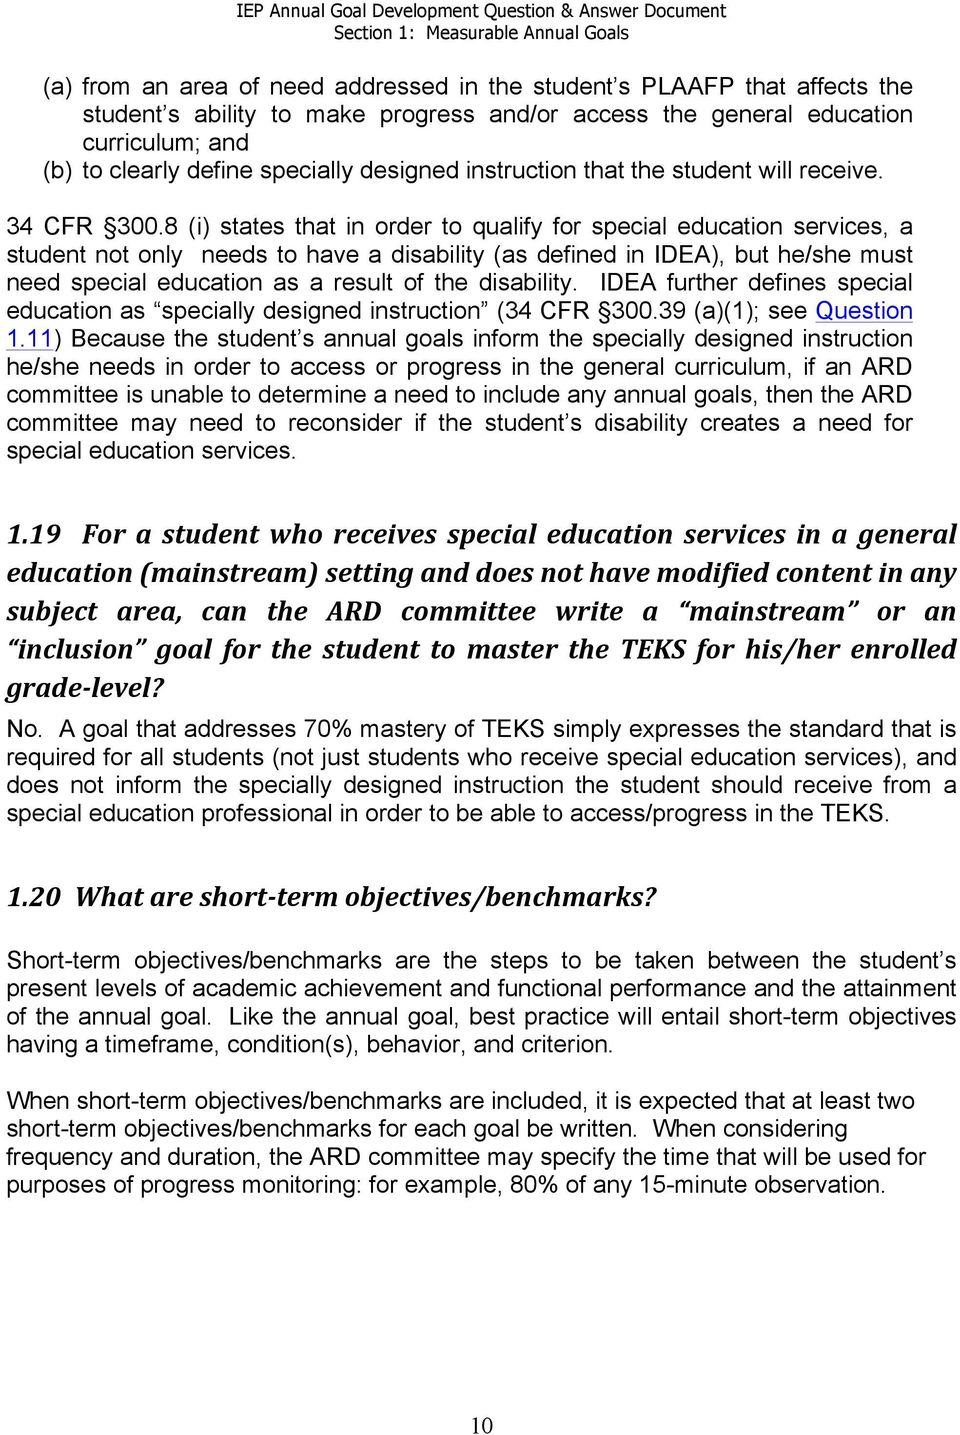 8 (i) states that in order to qualify for special education services, a student not only needs to have a disability (as defined in IDEA), but he/she must need special education as a result of the